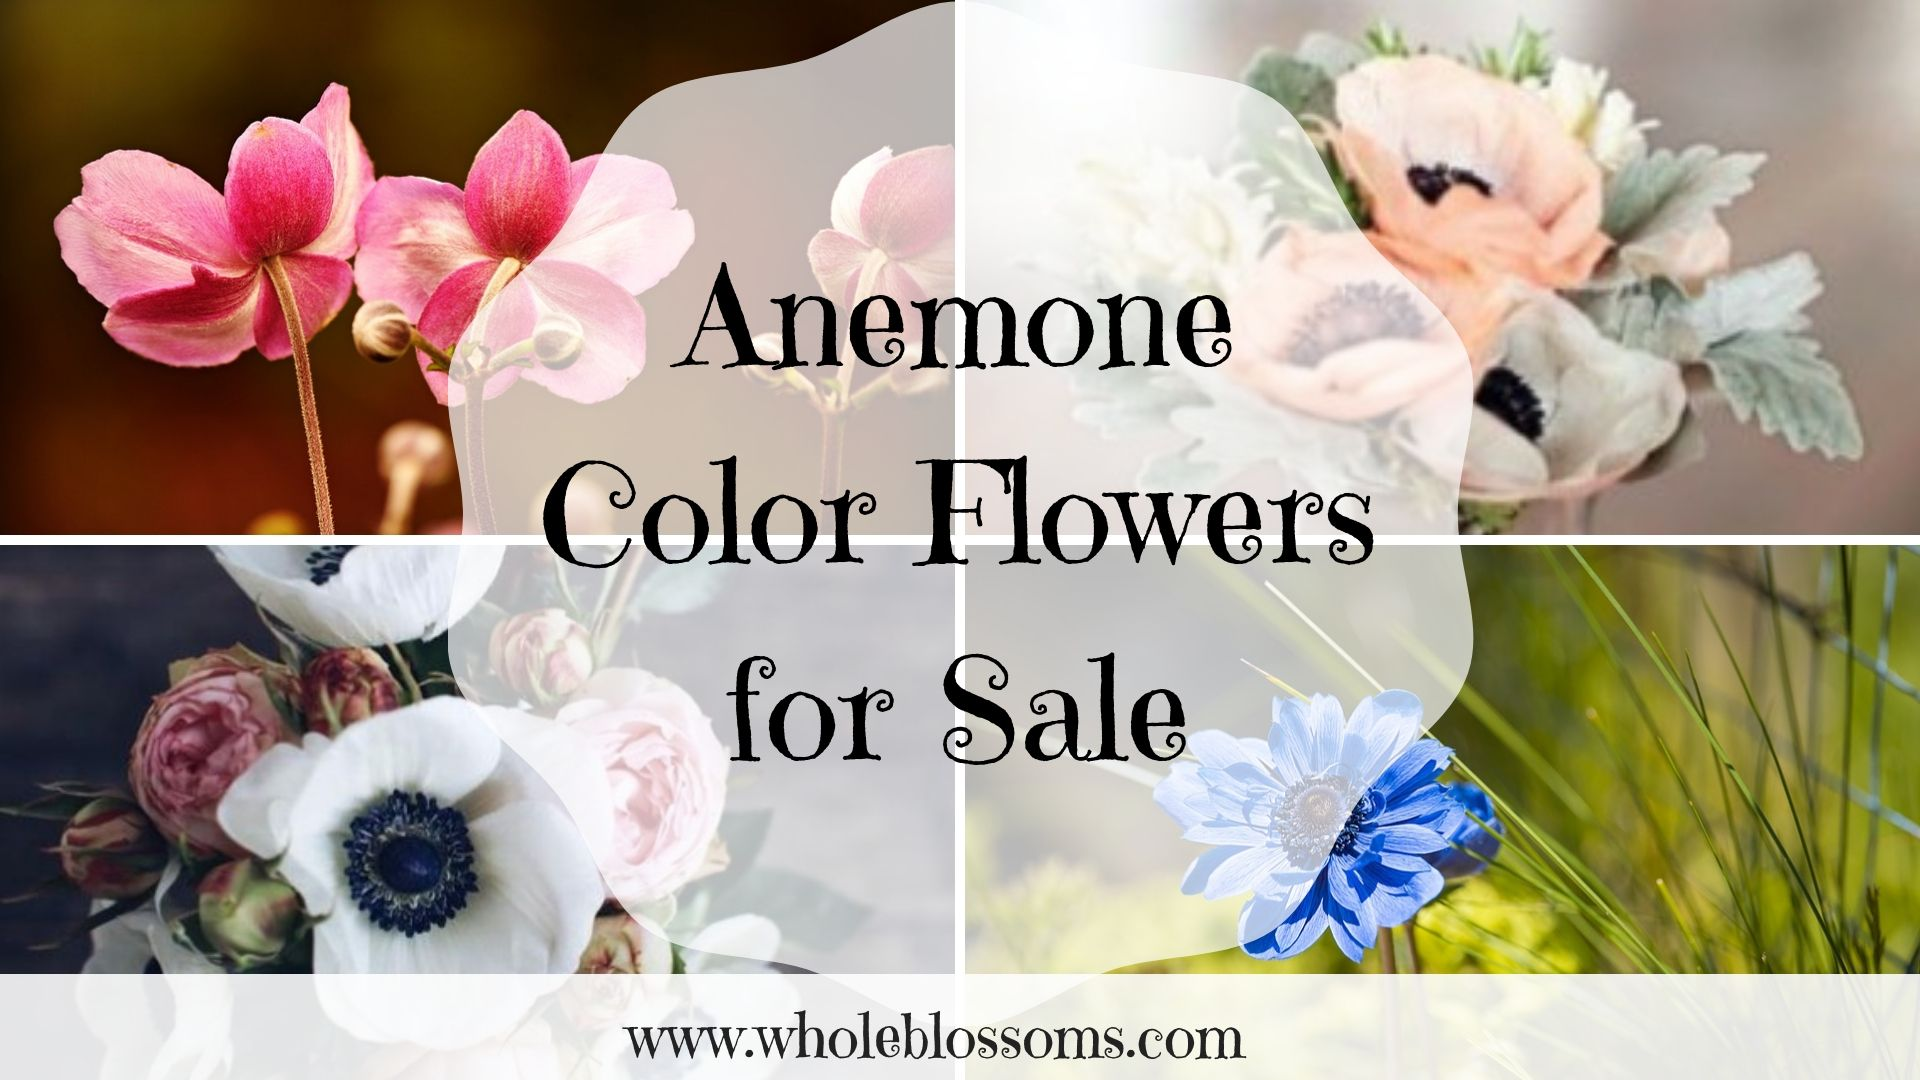 Anemone Flower Is Very Classical And Popular Flowers For Arranging Centerpieces And Bouquets As They Get Older Flowers For Sale Anemone Flower Popular Flowers